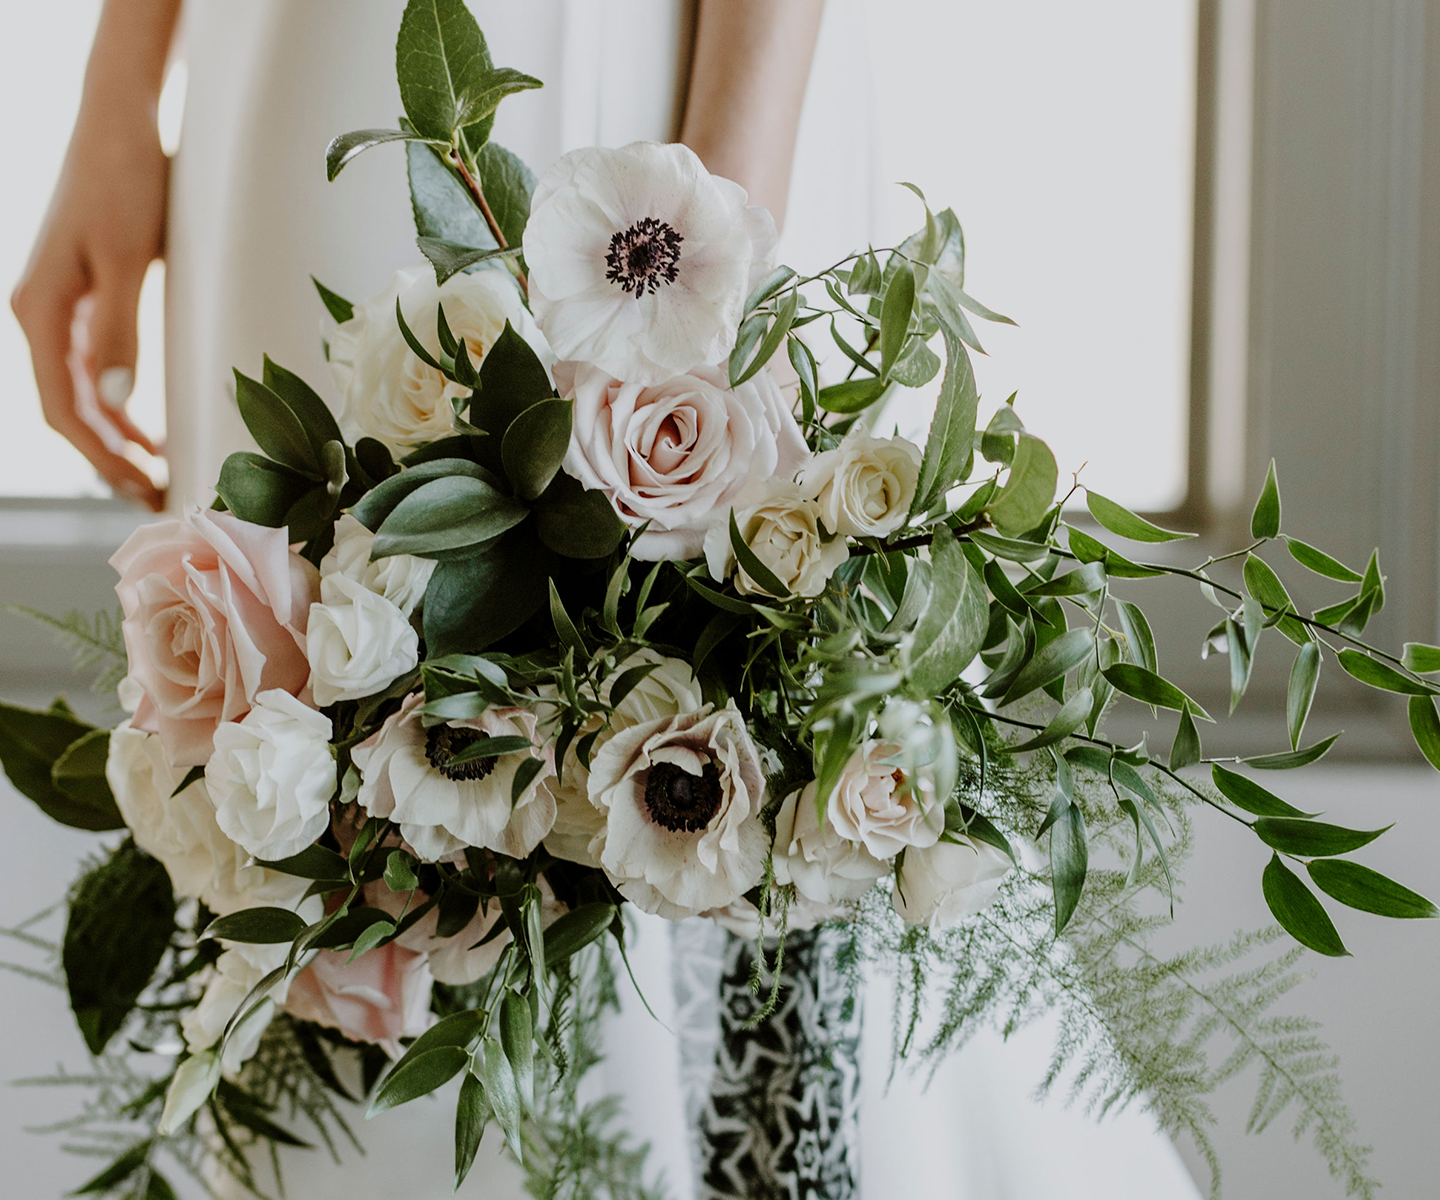 Bridal Bouquet Inspiration for Spring: 12 of the Prettiest Bouquets We've Seen This Spring in Alberta and the Rockies - Hen and Chicks on The Bronte Bride